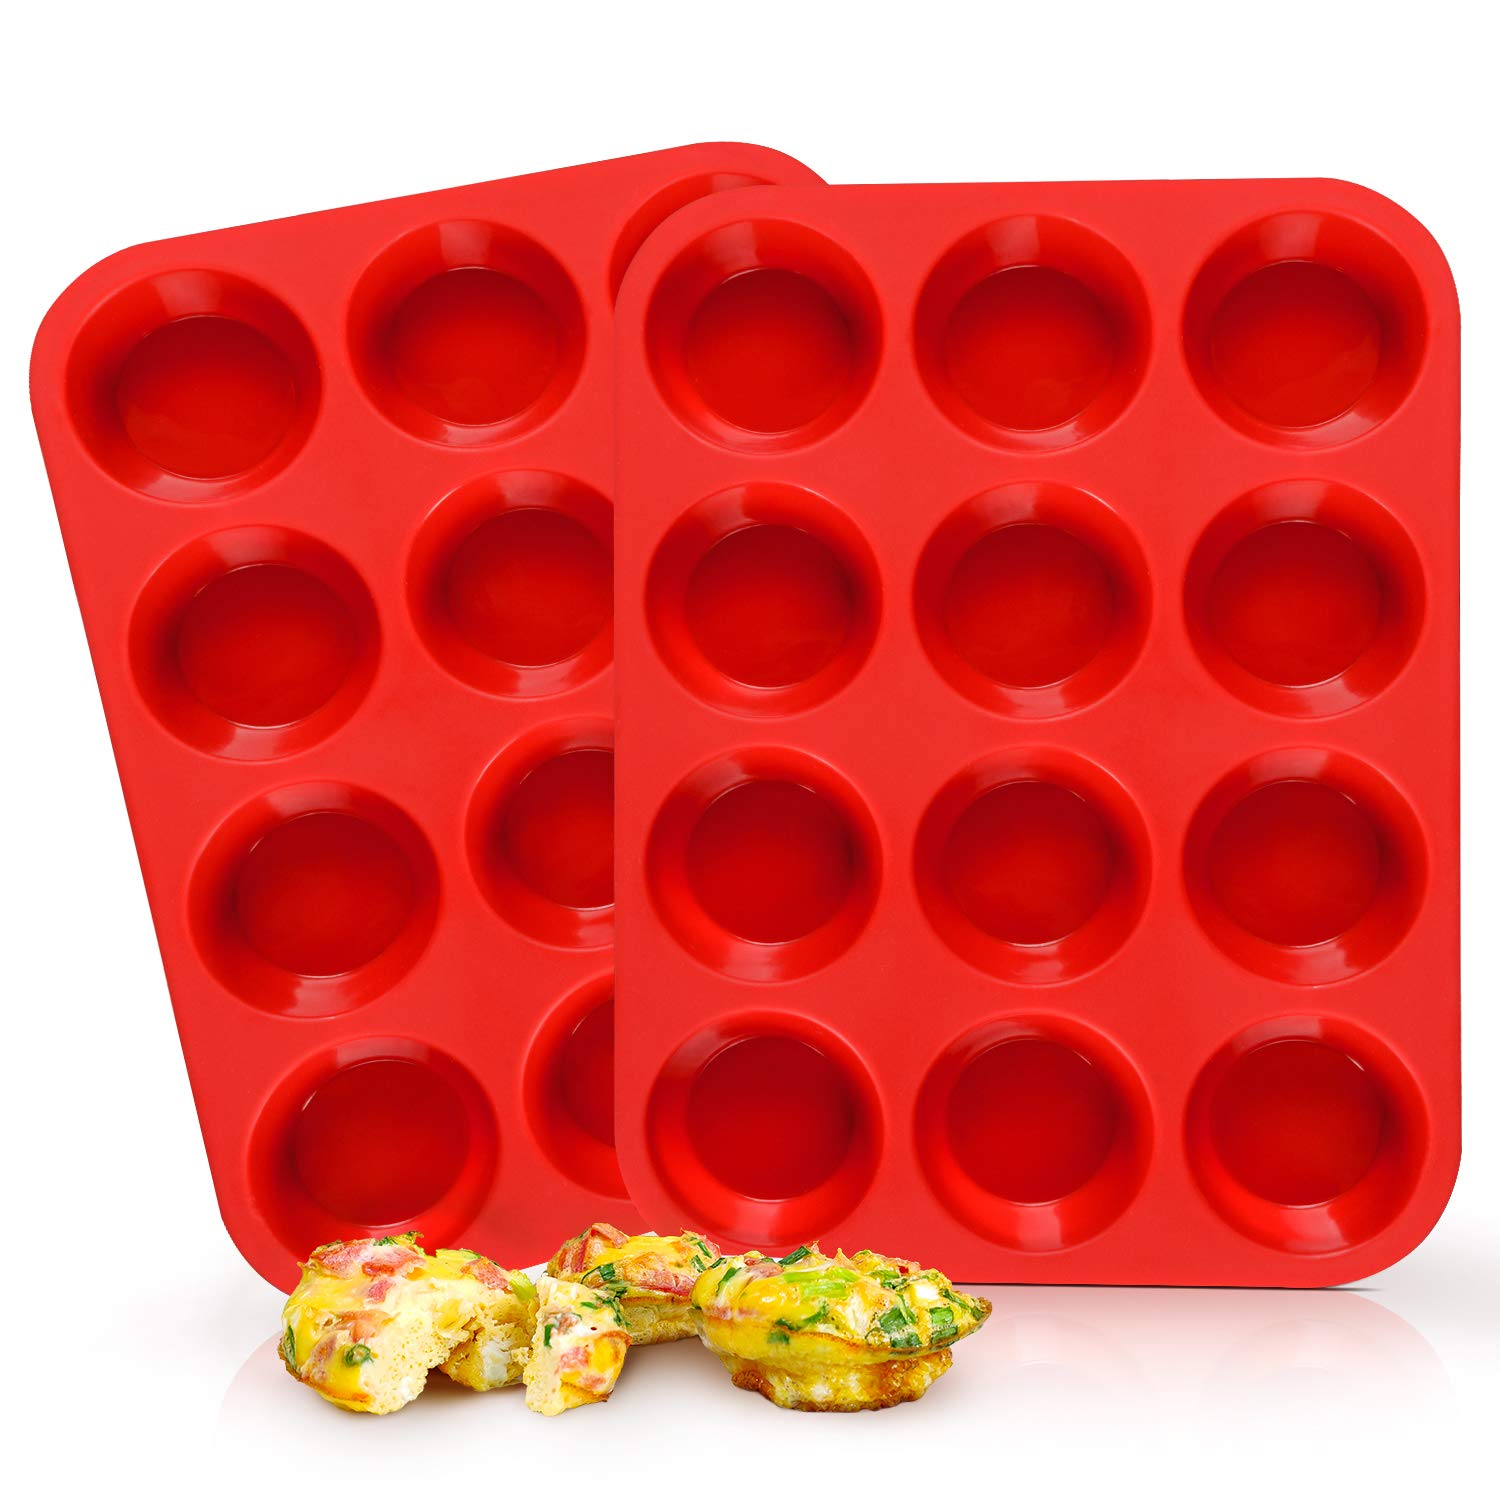 SJ Silicone Muffin Pan Set - Regular 12 Cups Muffin Molds, Non-stick BPA Free Best Food Grade Silicone Molds, Pack of 2 JSC2415